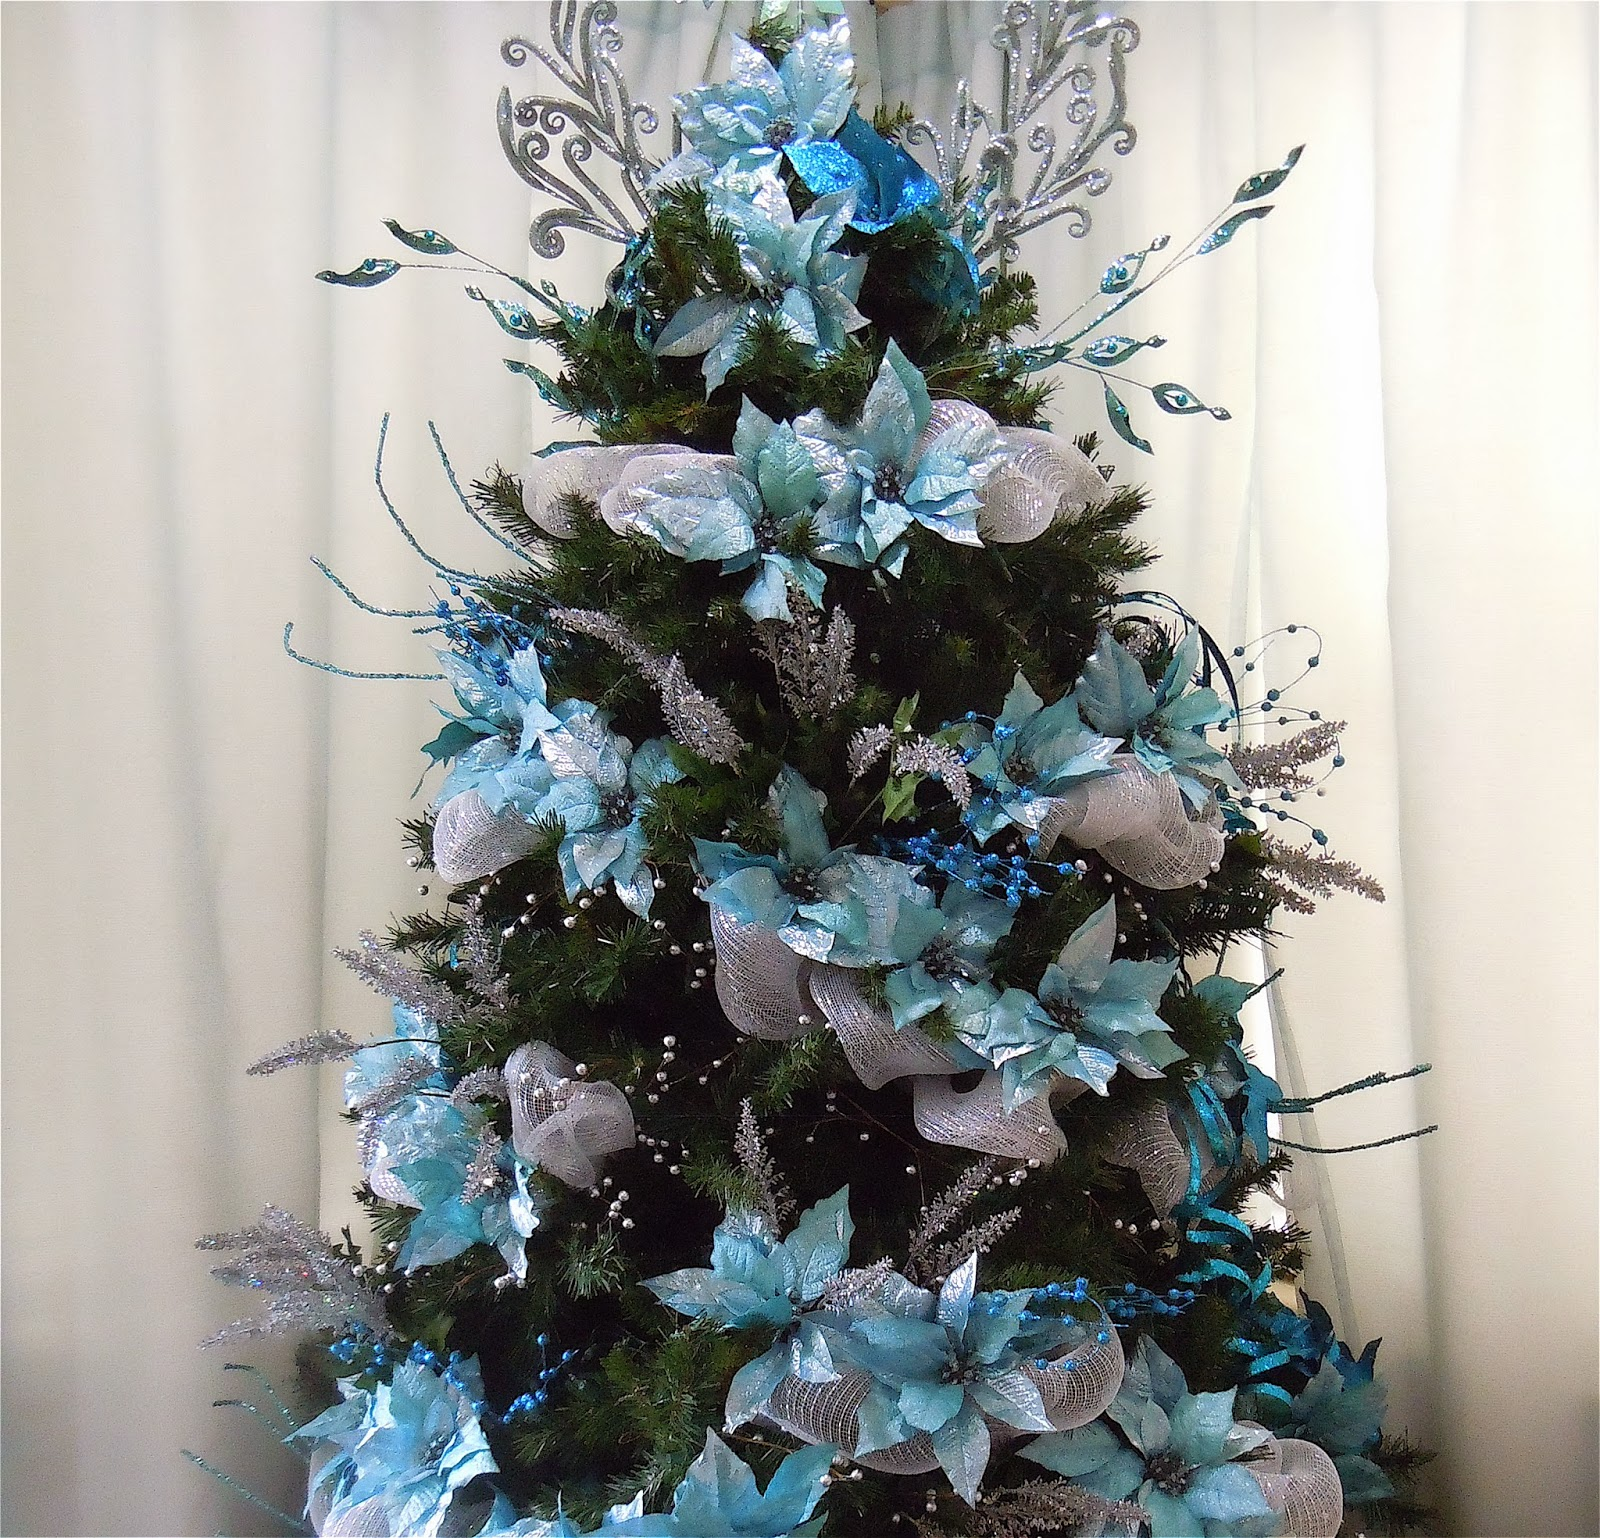 still in the initial stages of decorating just with turquoise poinsettias silver and blue picks no ornaments yet and it looks full already - Blue And Silver Christmas Decorations